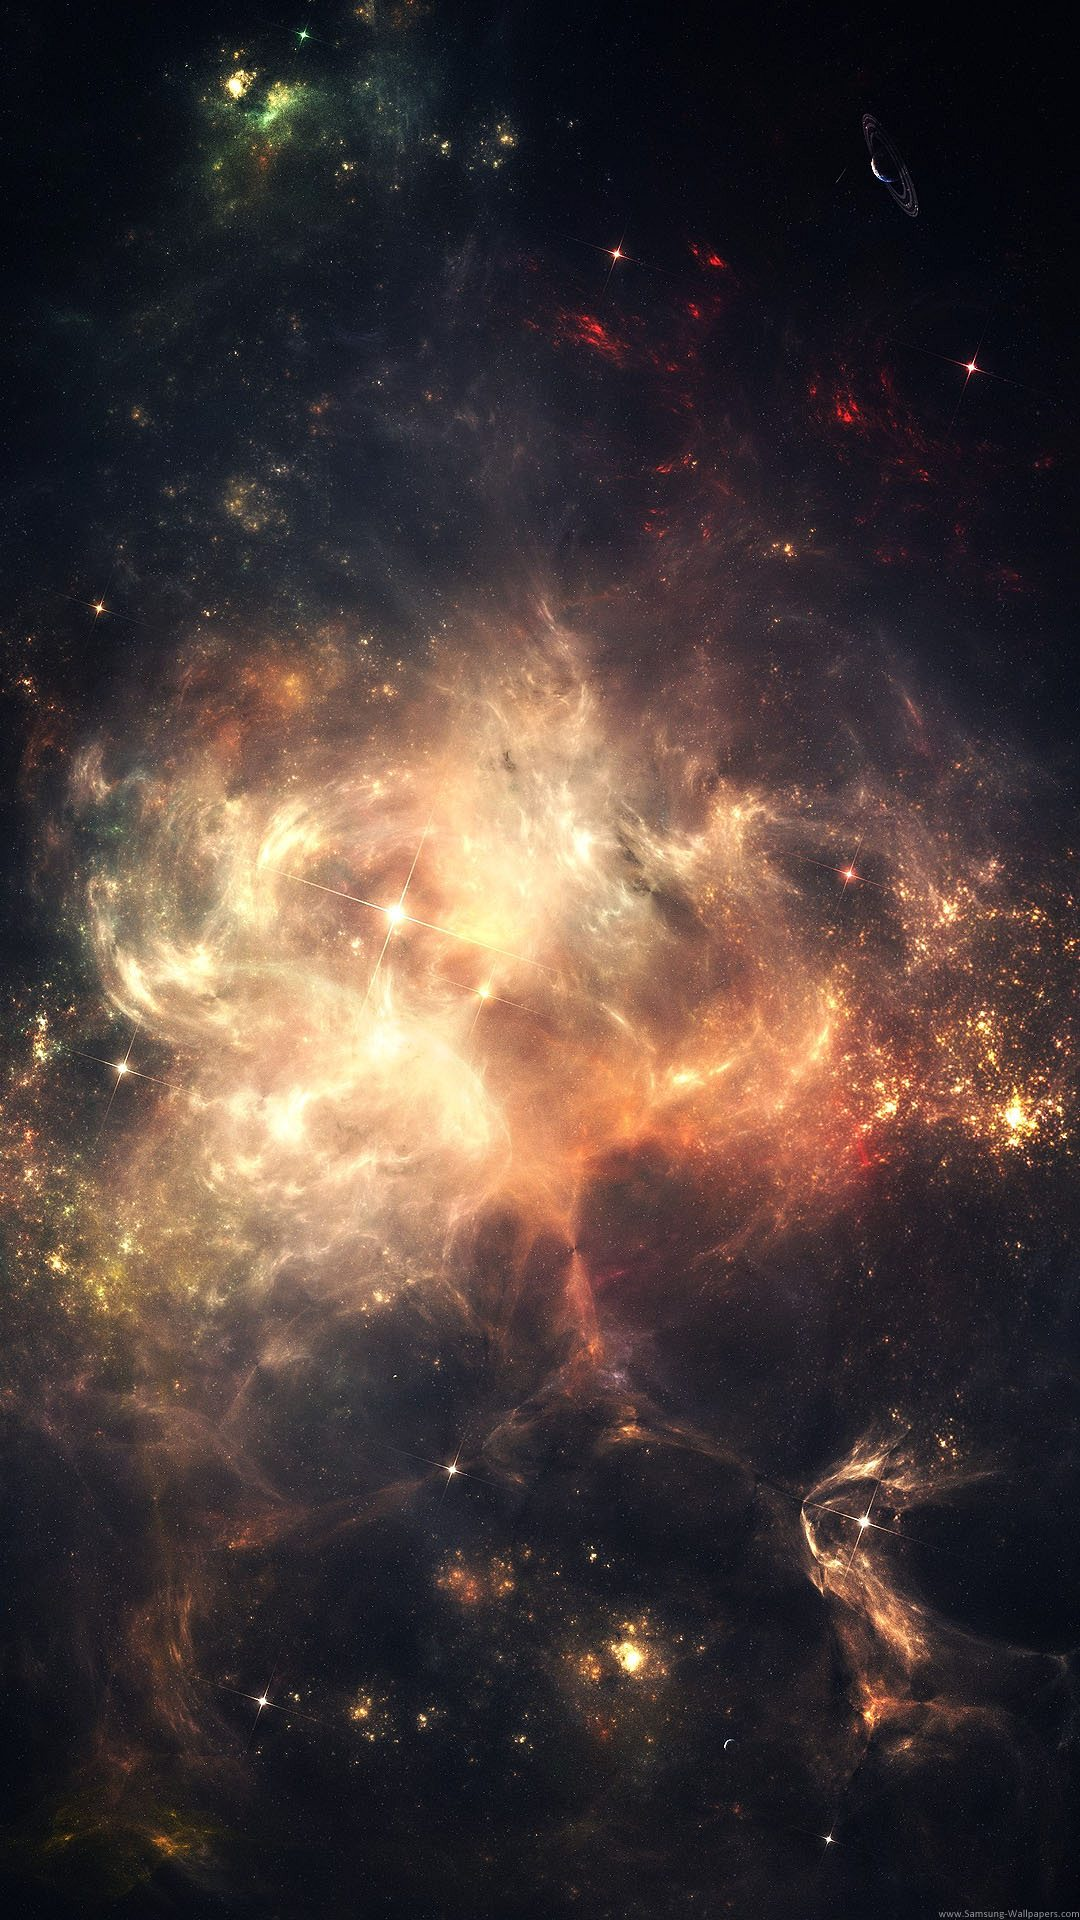 Wallpaper Full Hd 1080 X 1920 Smartphone Energy Nebulae   1080 x 1920 1080x1920